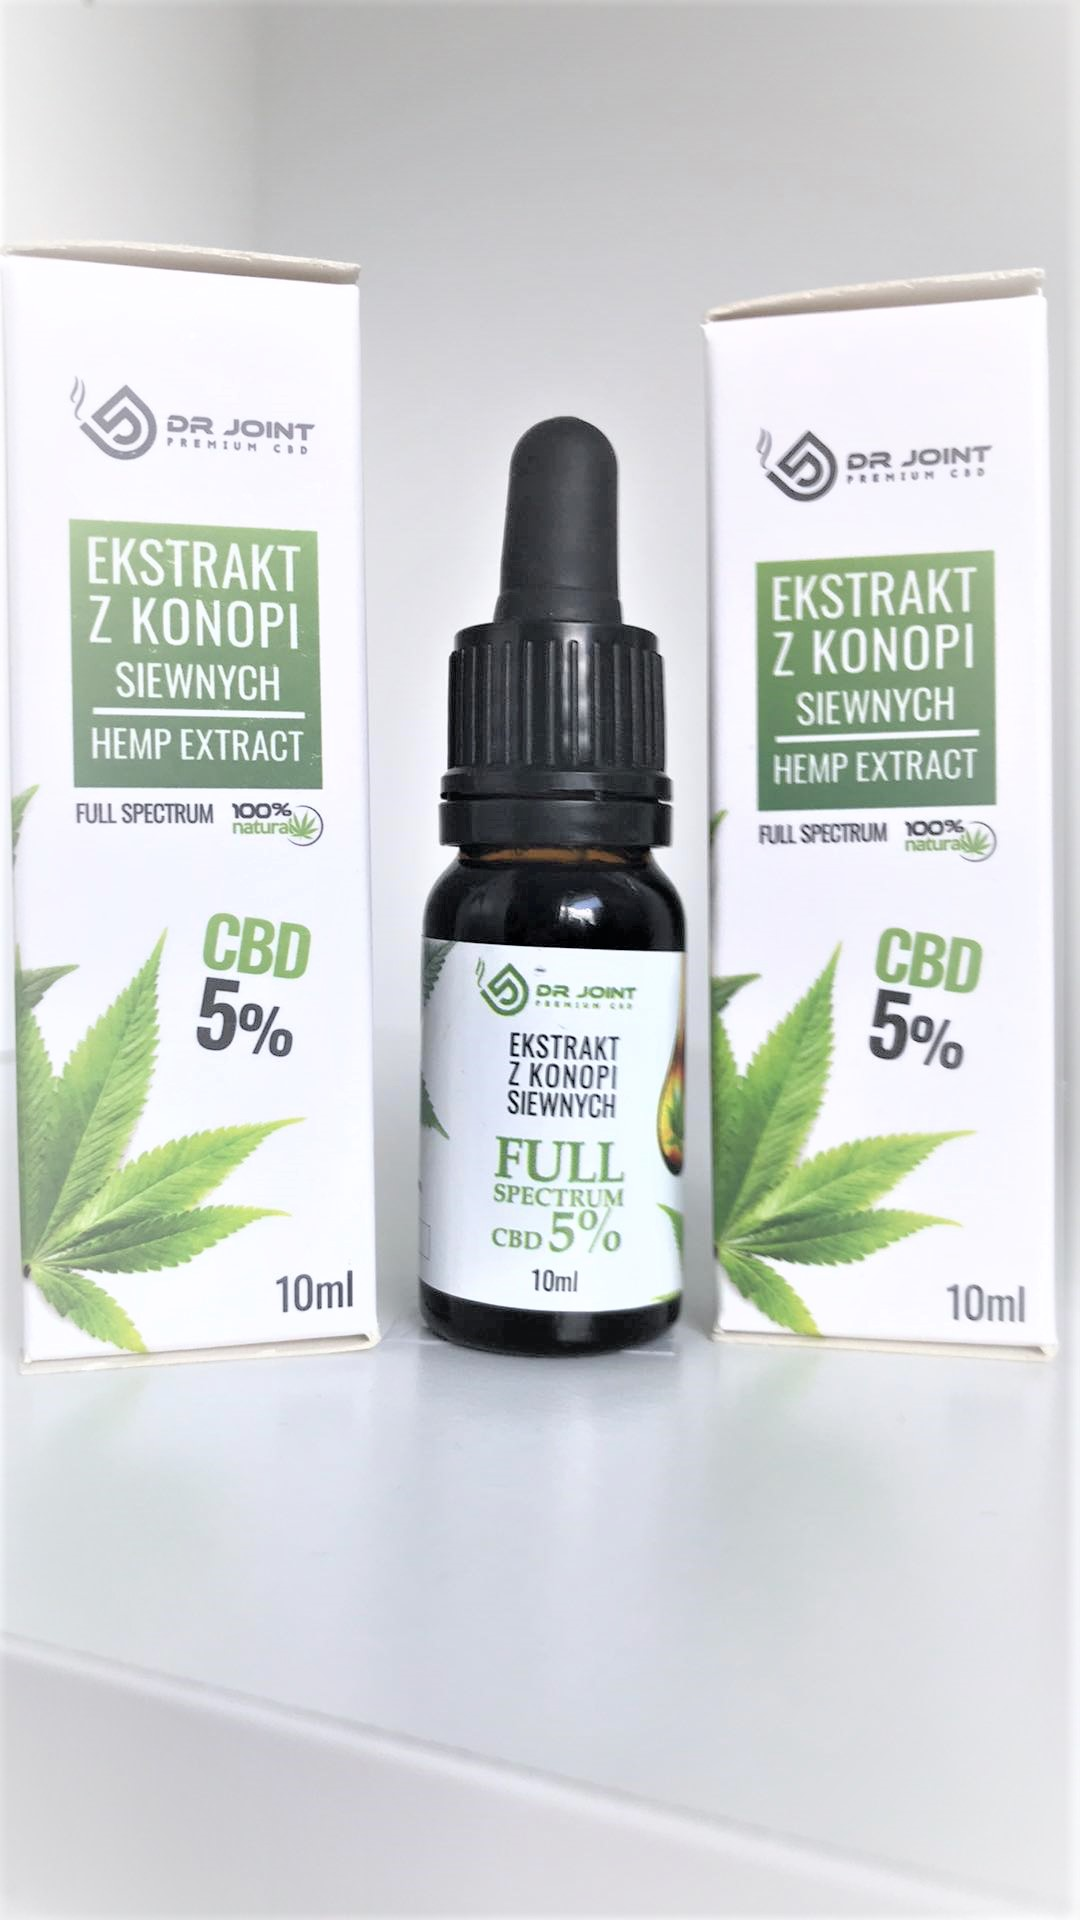 Olejek Konopny  Full Spectrum CBD CO2 Dr Joint 3 X 5 % 500mg 10ml